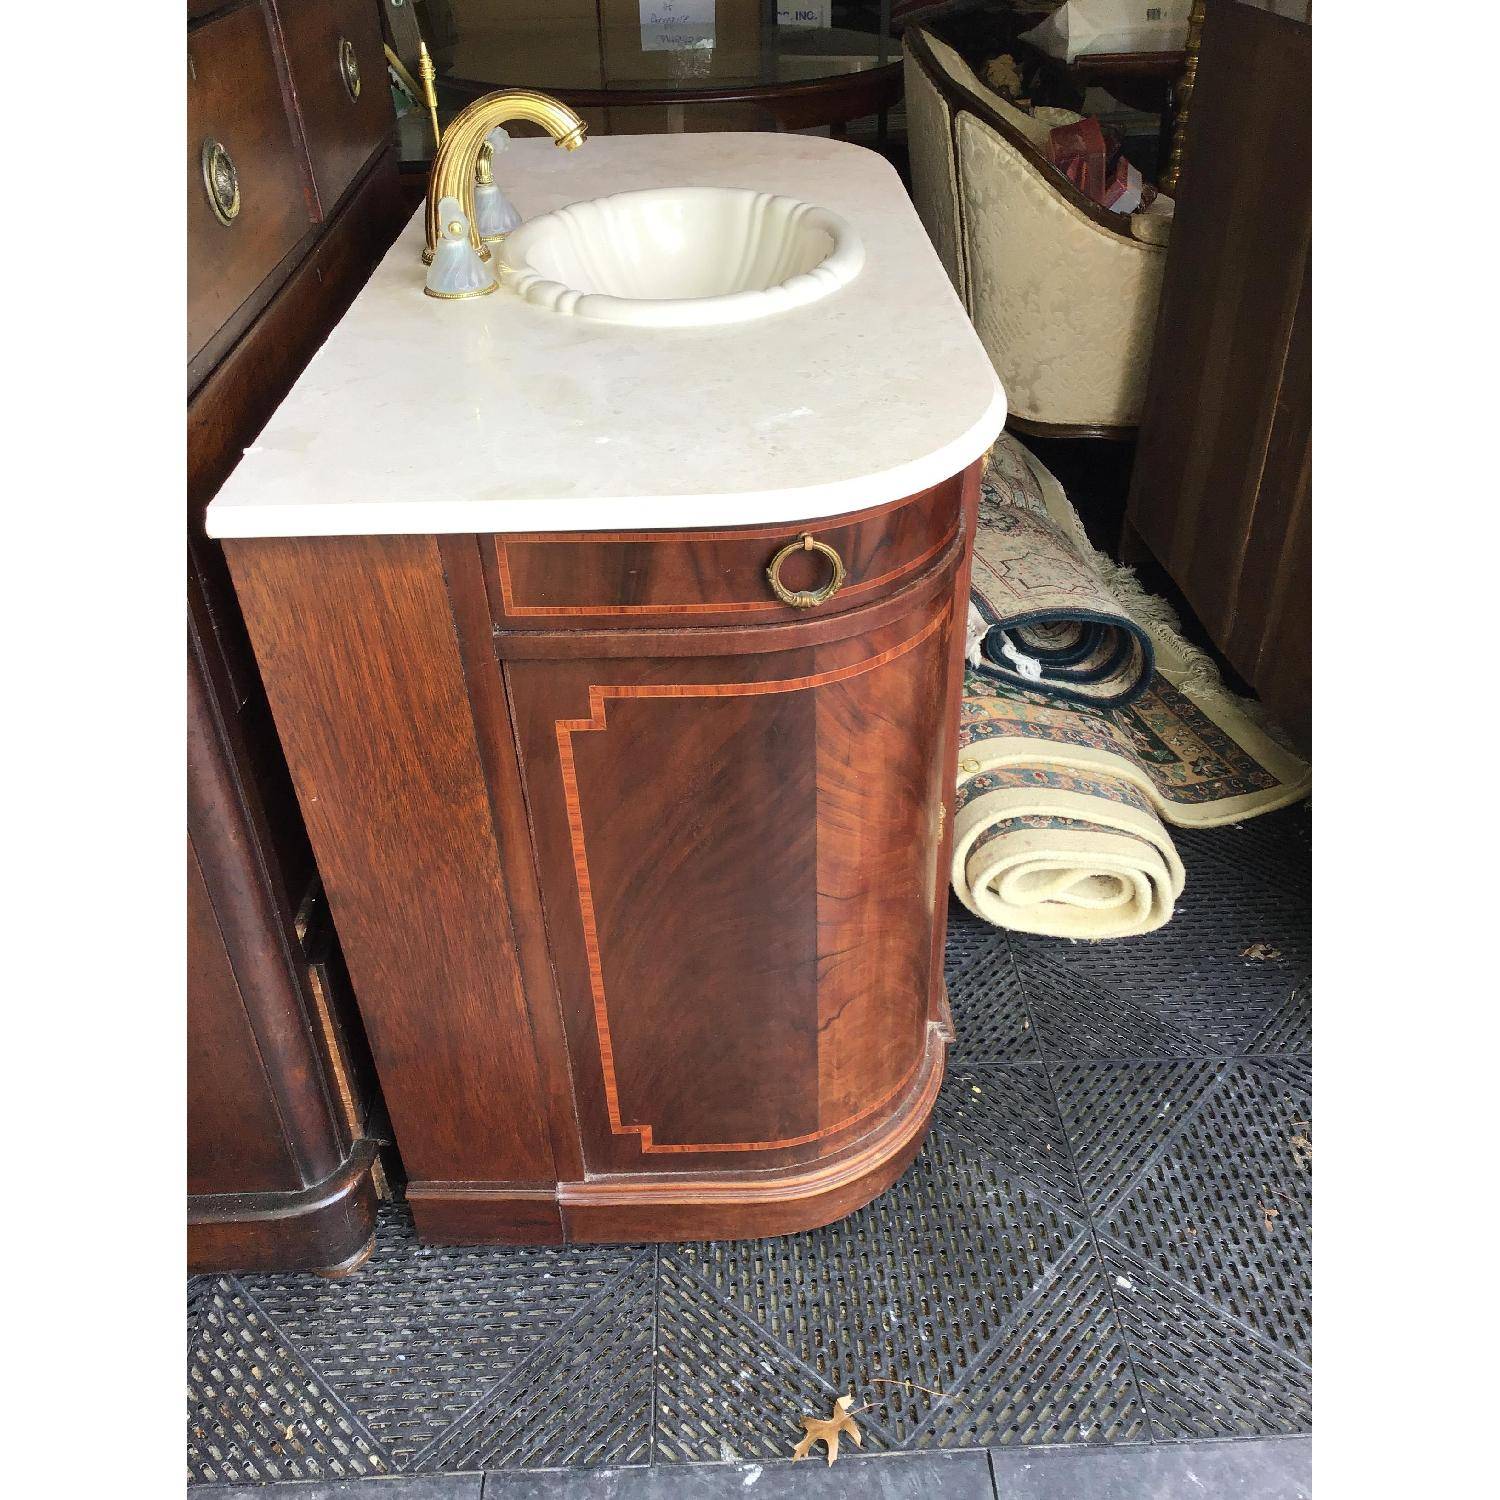 Phylrich Faucet Sink Mahogany Vanity-2